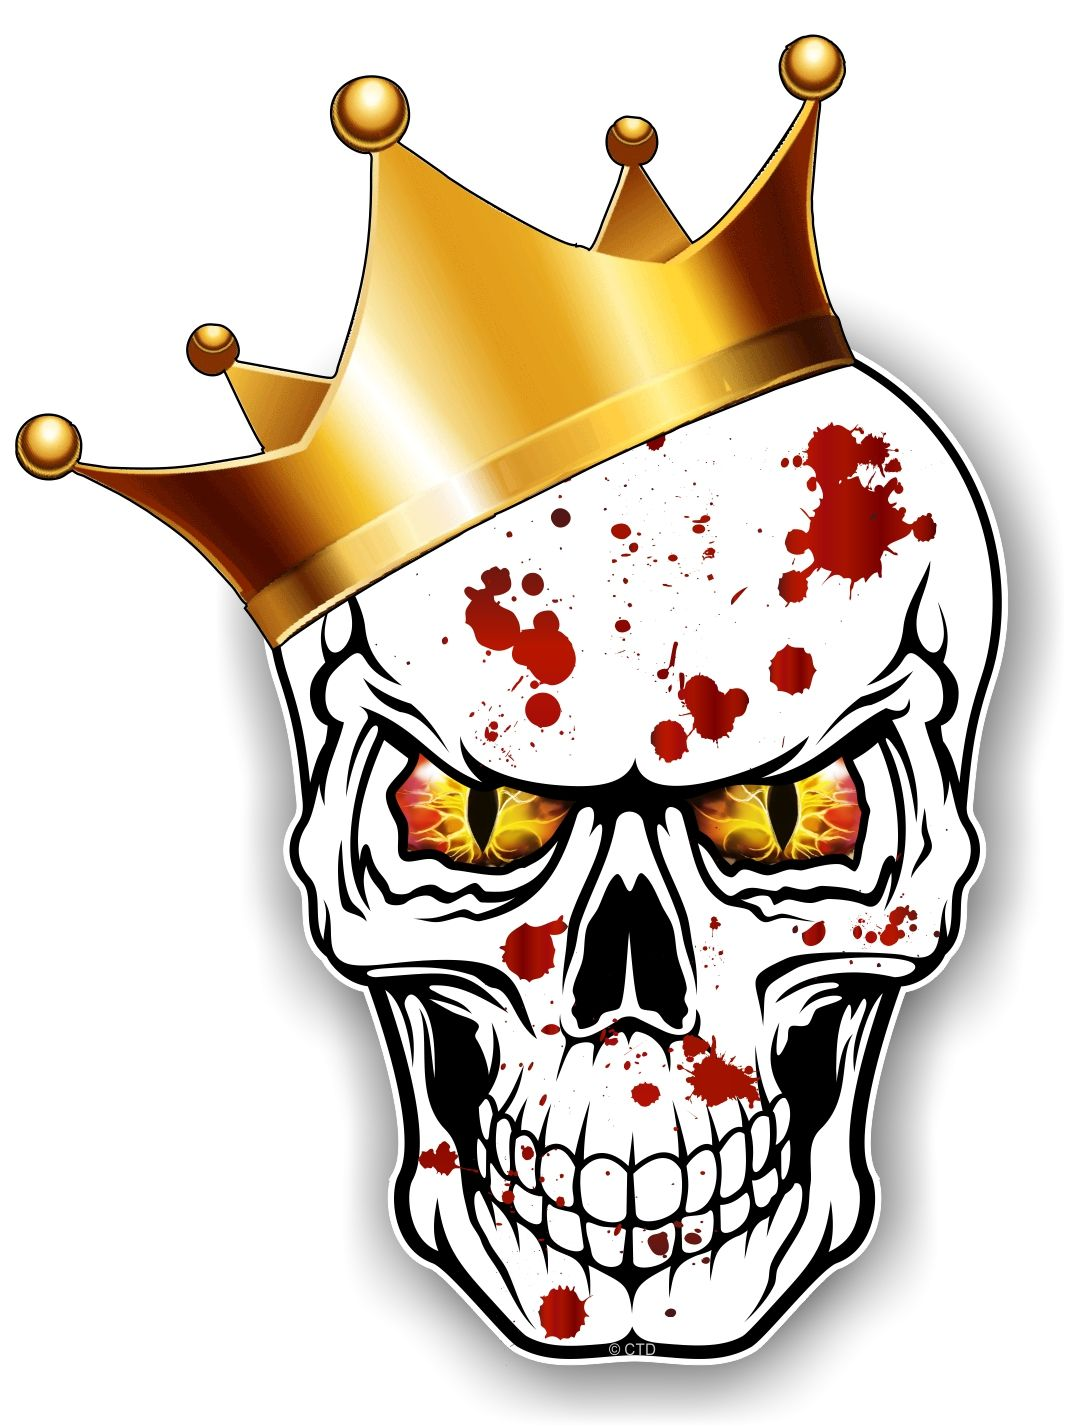 Gothic King Of Skull Skulls With Red Amp Yellow Evil Eyes